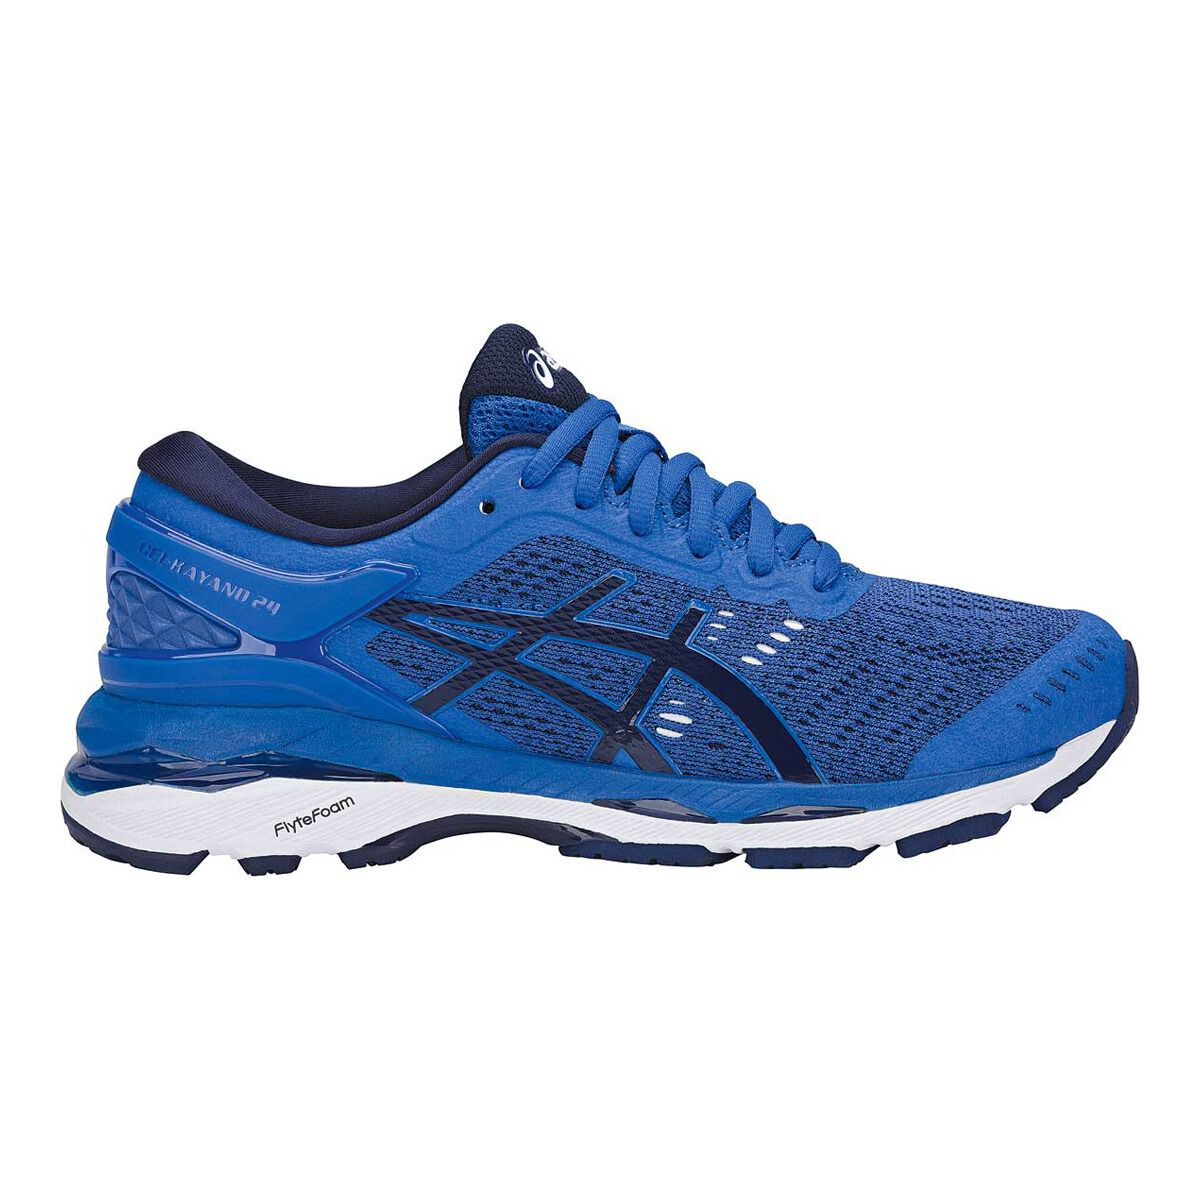 24 Kids Gel Running Sport Asics Kayano ShoesRebel CxeBord